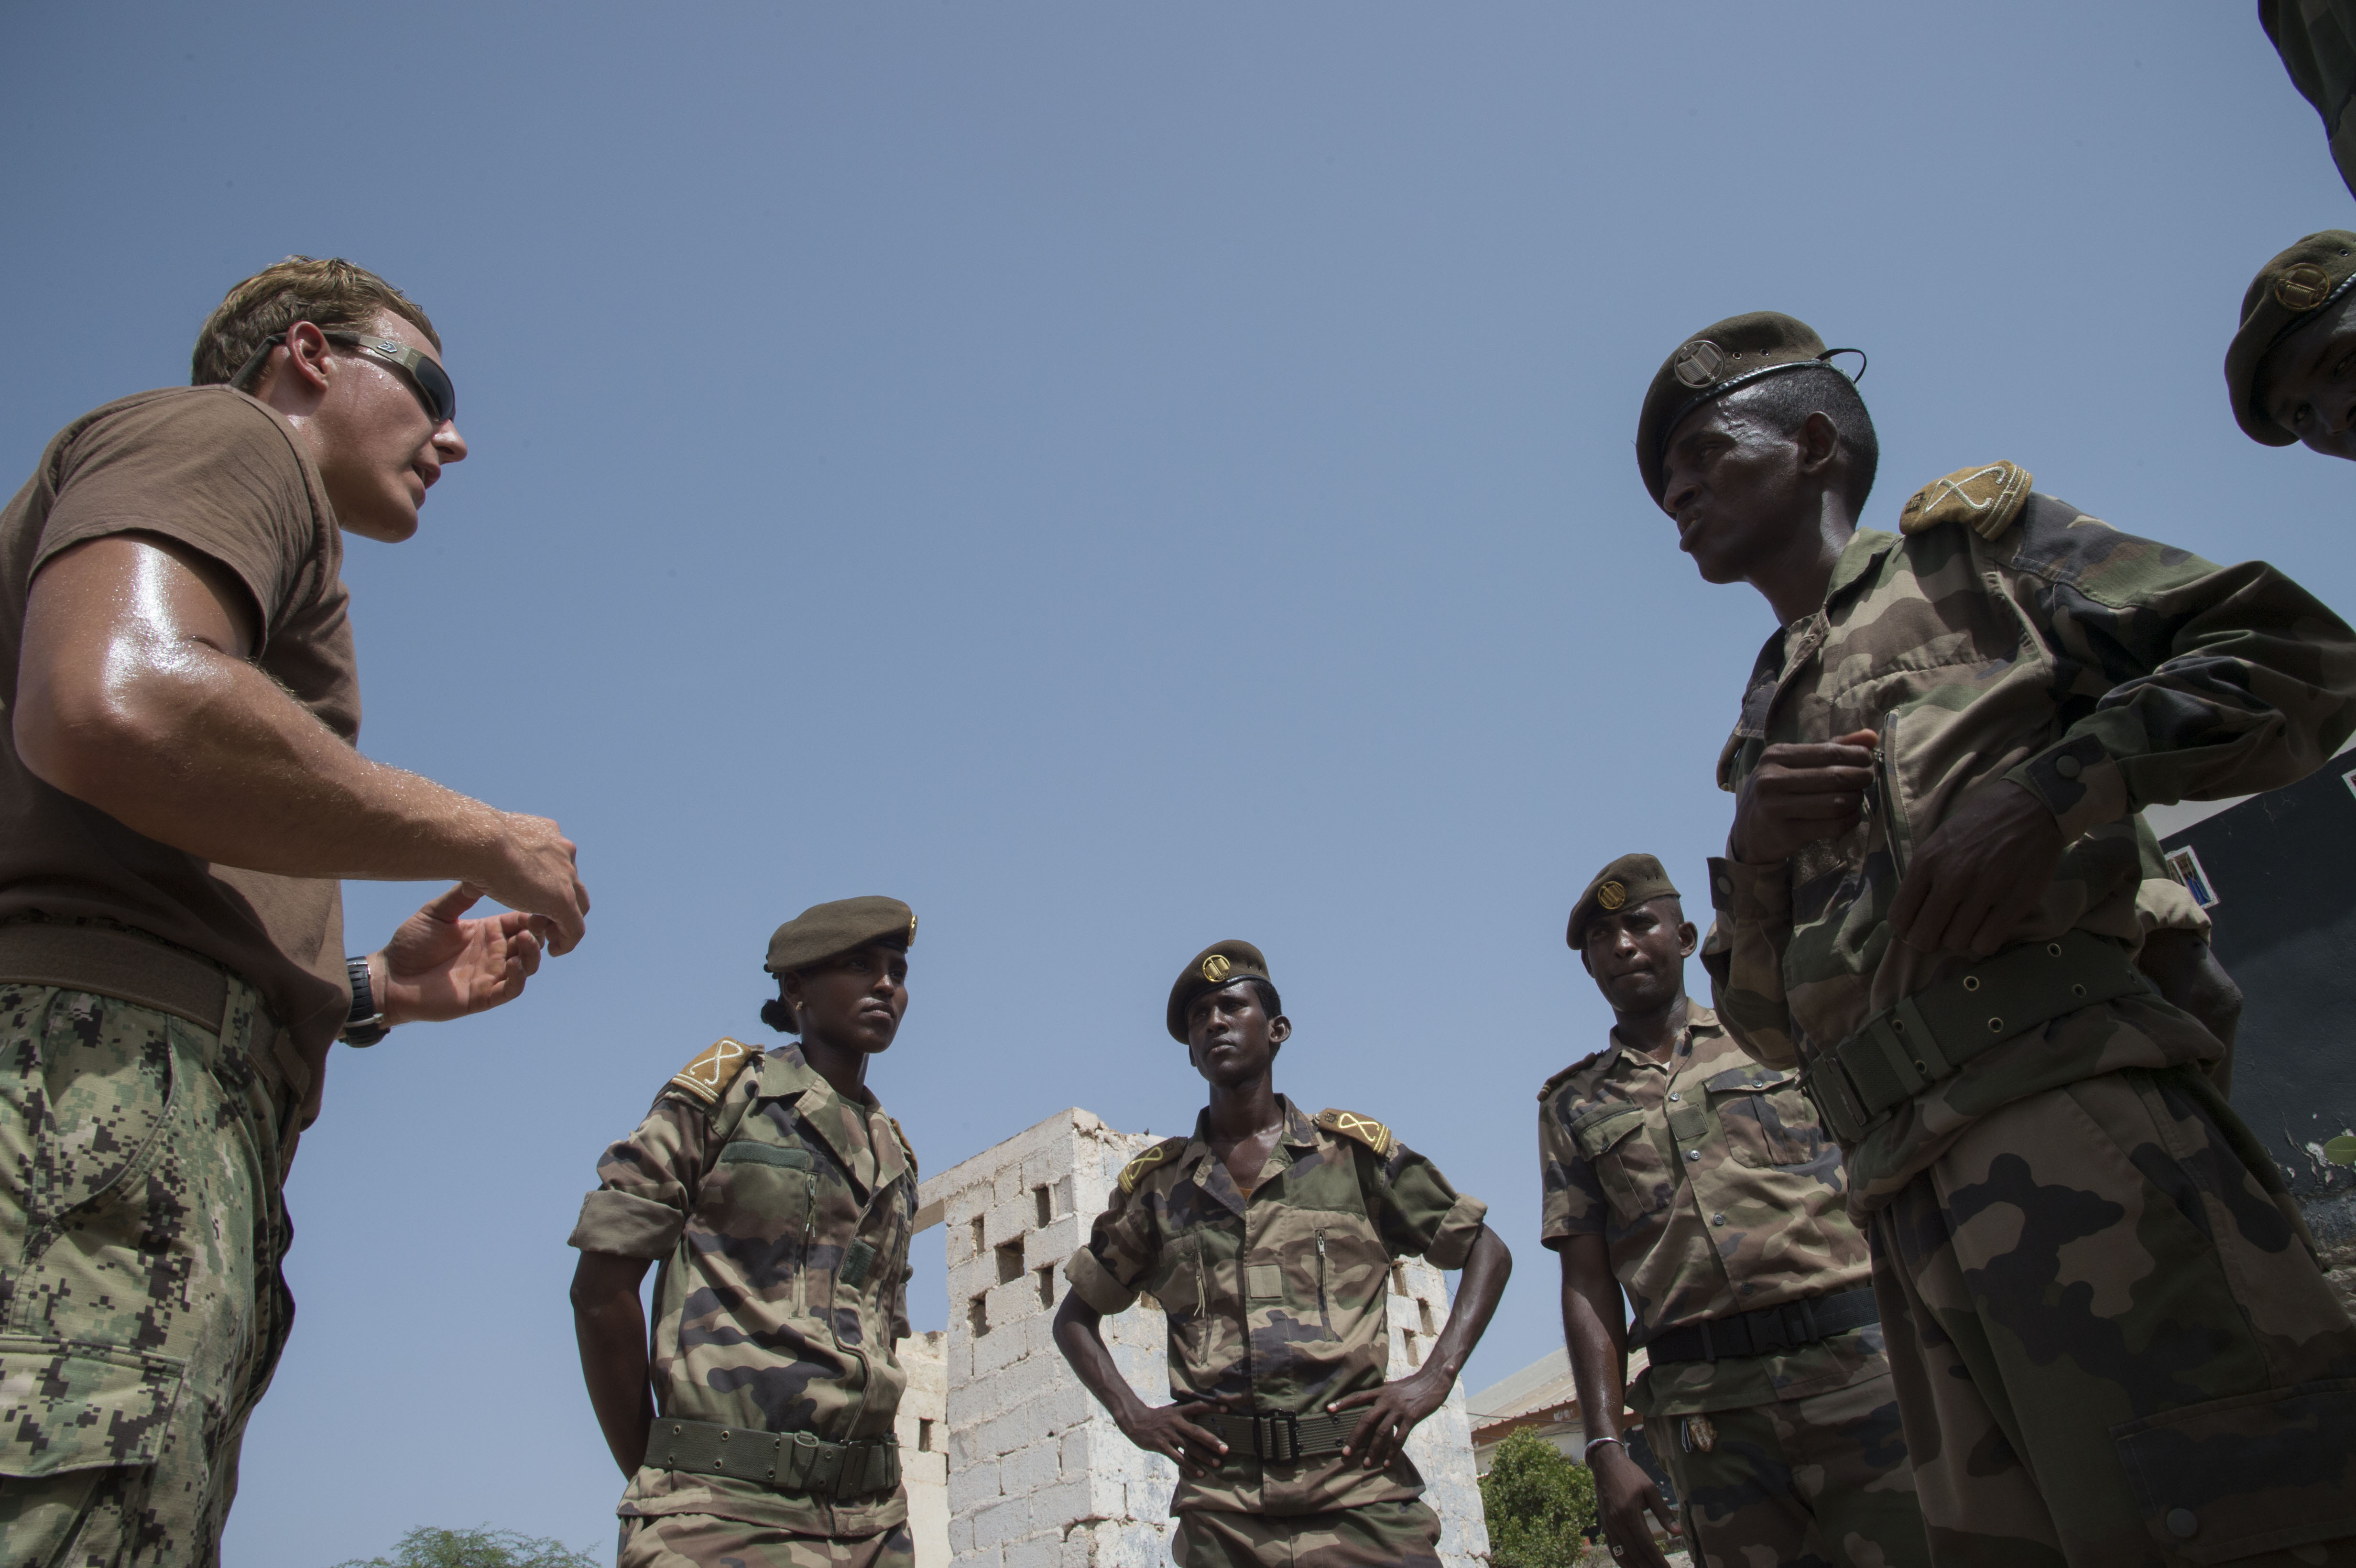 U.S. Navy Petty Officer 2nd Class Evan Bruce, a Mobile Unit 1 explosive ordnance disposal technician, evaluates Djiboutian Army cadets on their roadside bomb patrol during a training course at Arta, Djibouti, May 18, 2016. Cadets who become officers may perform missions in Somalia keeping troops safe from roadside bombs. (U.S. Air Force photo by Staff Sgt. Eric Summers Jr./Released)